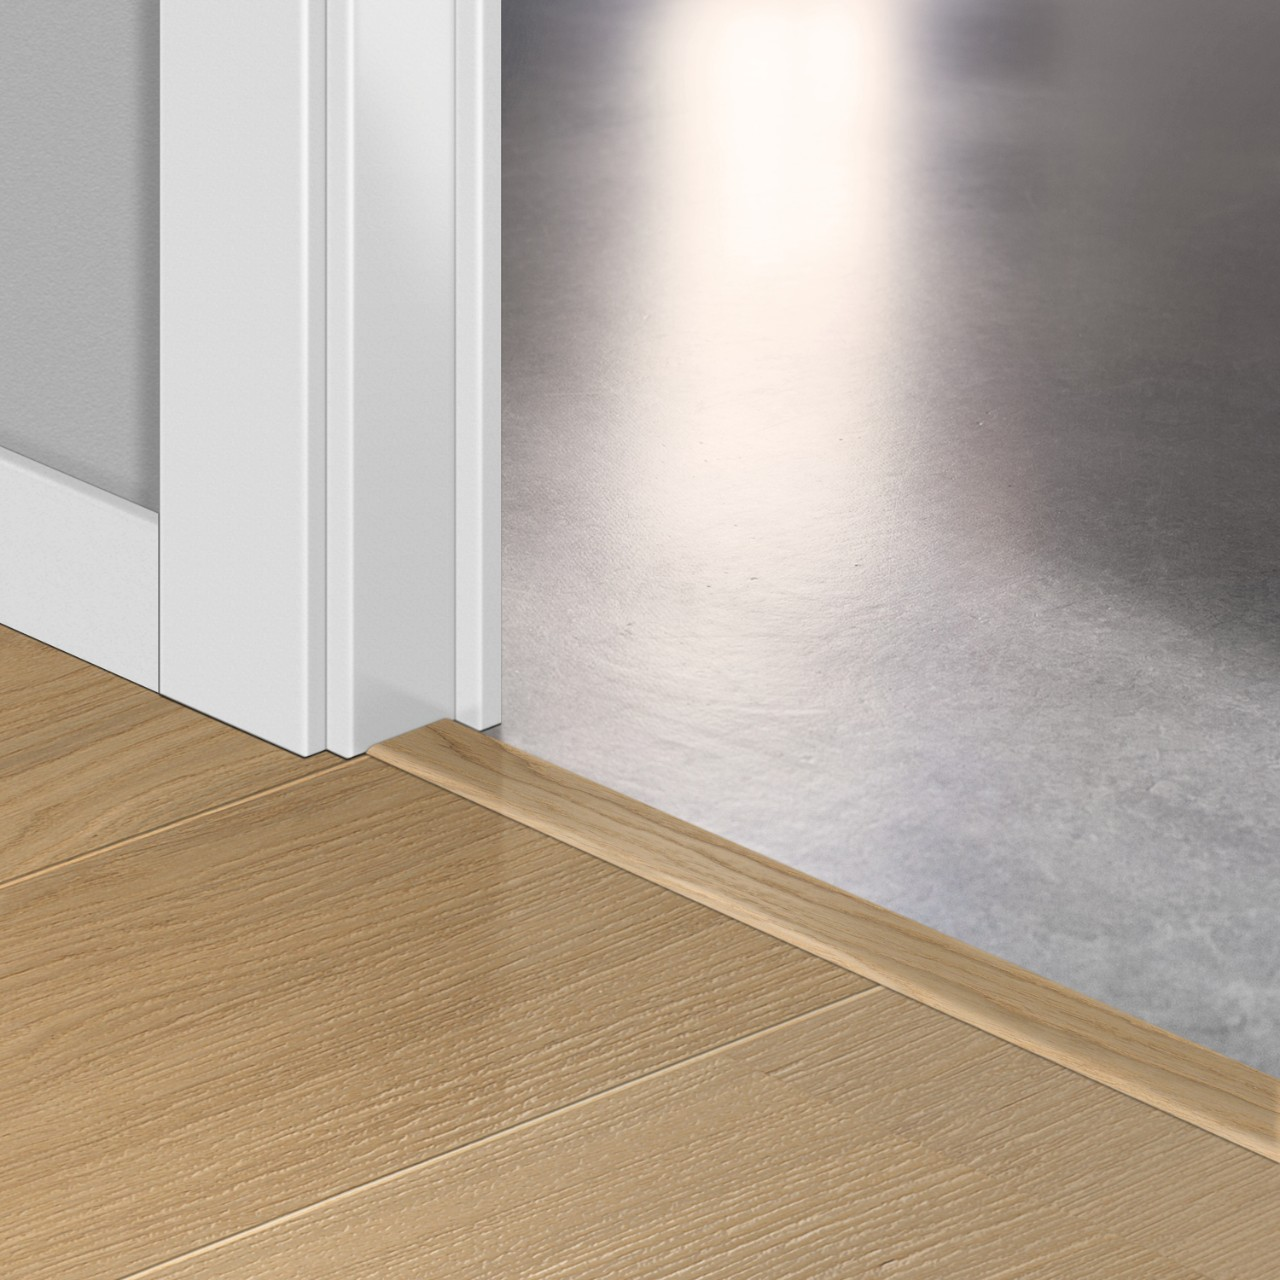 QSWINCP Parquet Accessories Incizo Profile (matching colour) QSWINCP01341